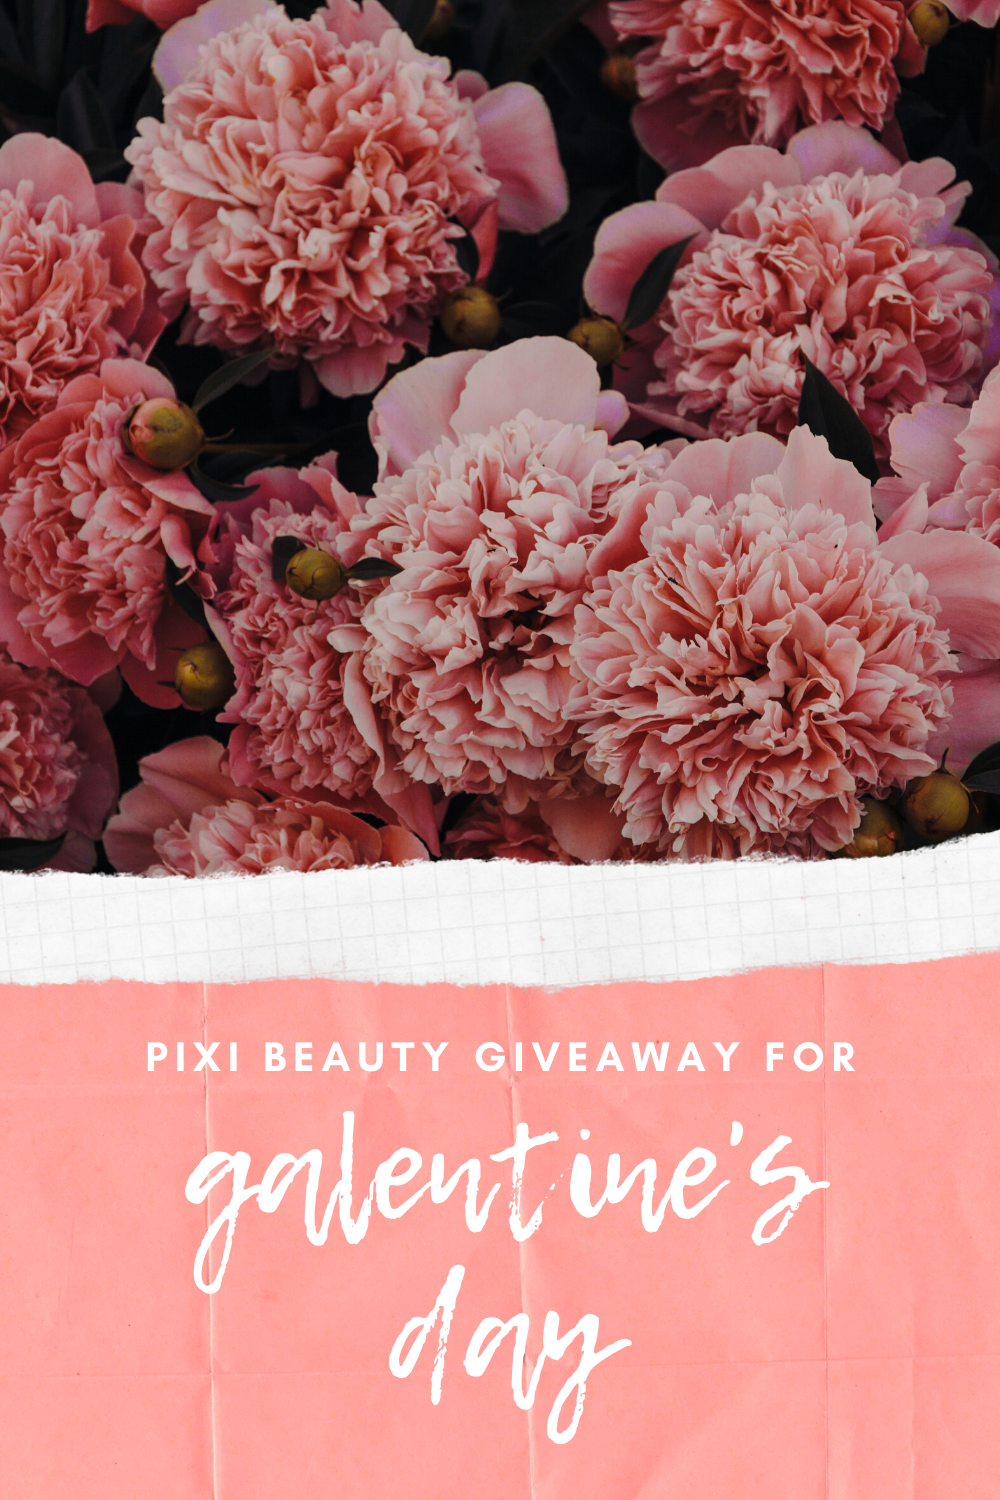 Pixi Beauty Galentine's Day Giveaway